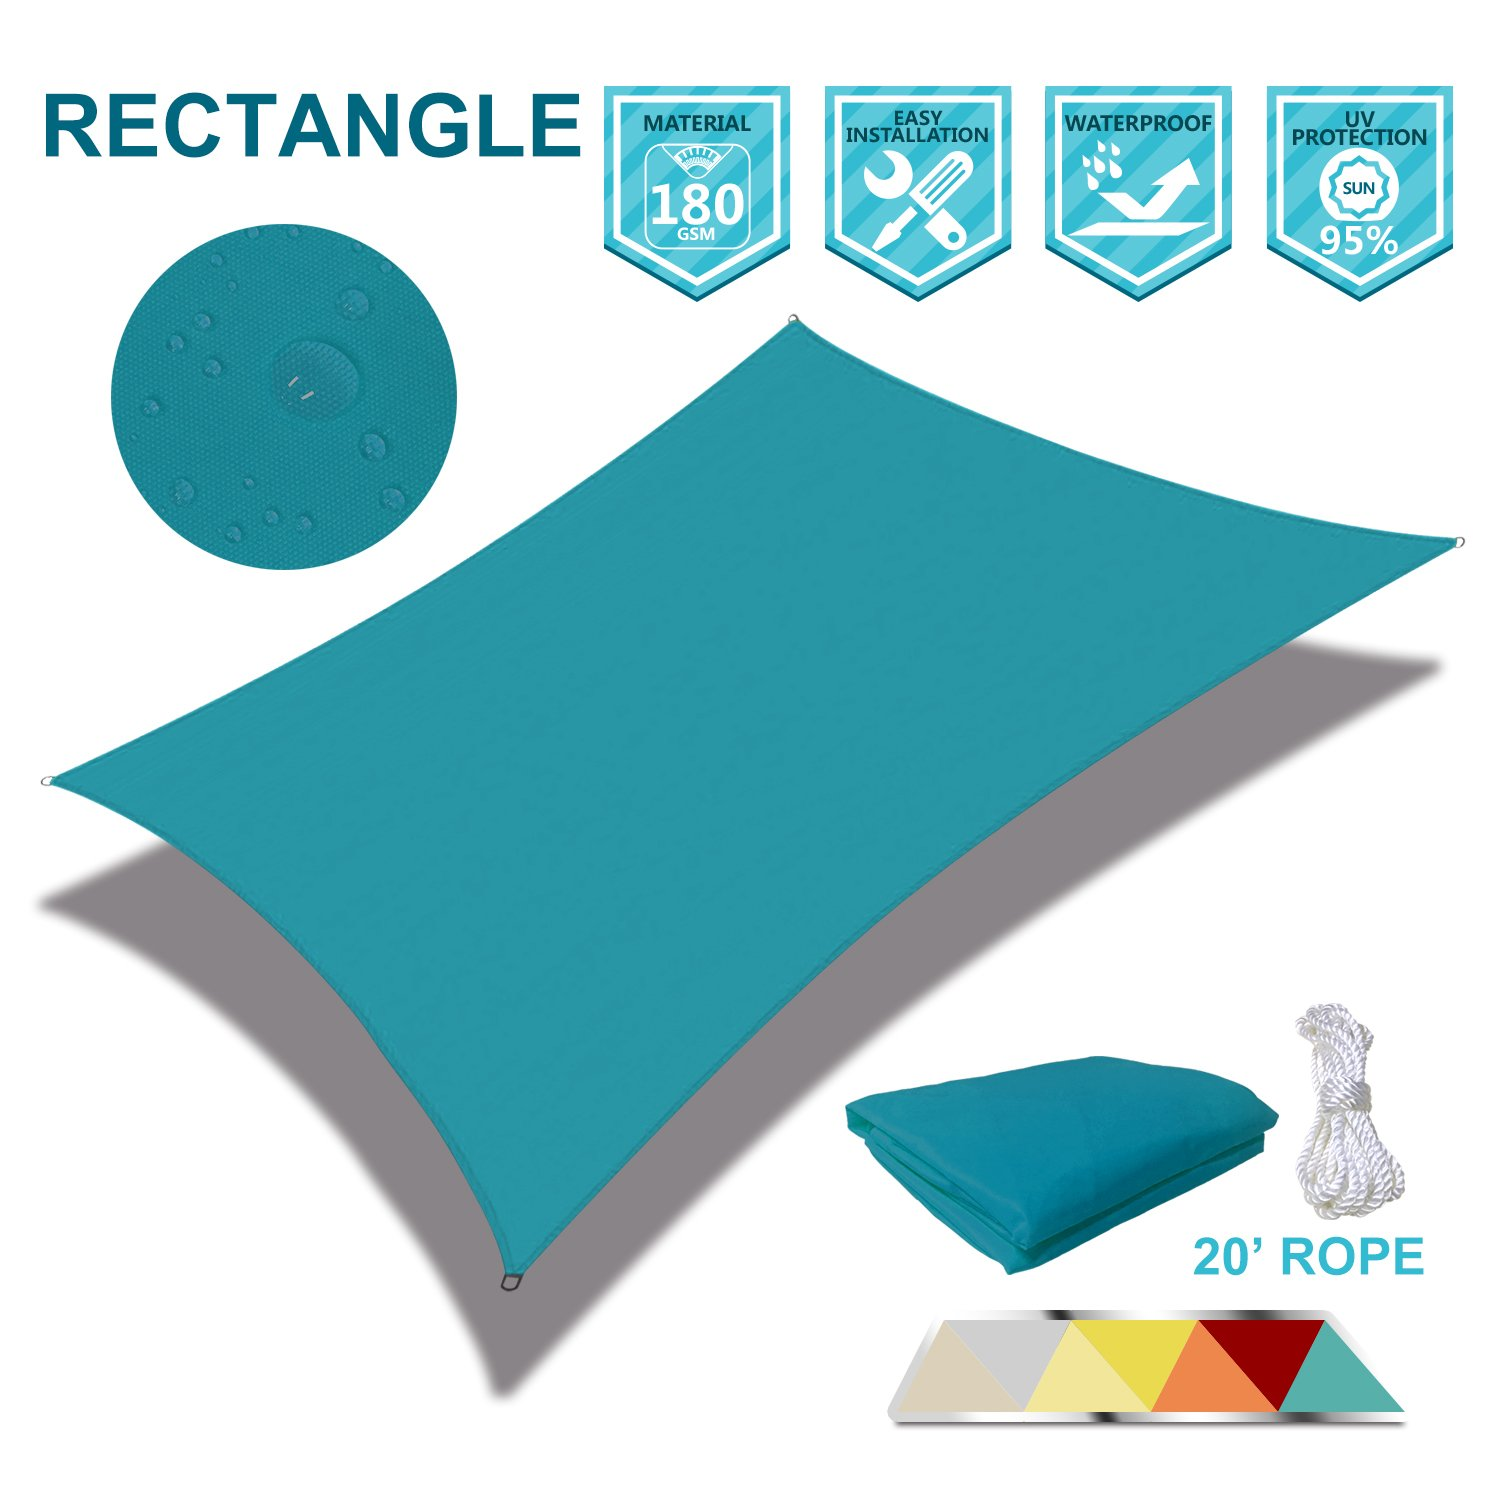 Coarbor Waterproof 8 x12 Sun Shade Sail Canopy Customized Rectangle Polyester for Pergola Carport Awning Patio Yard UV Block- Make to Order-Turquoise Green